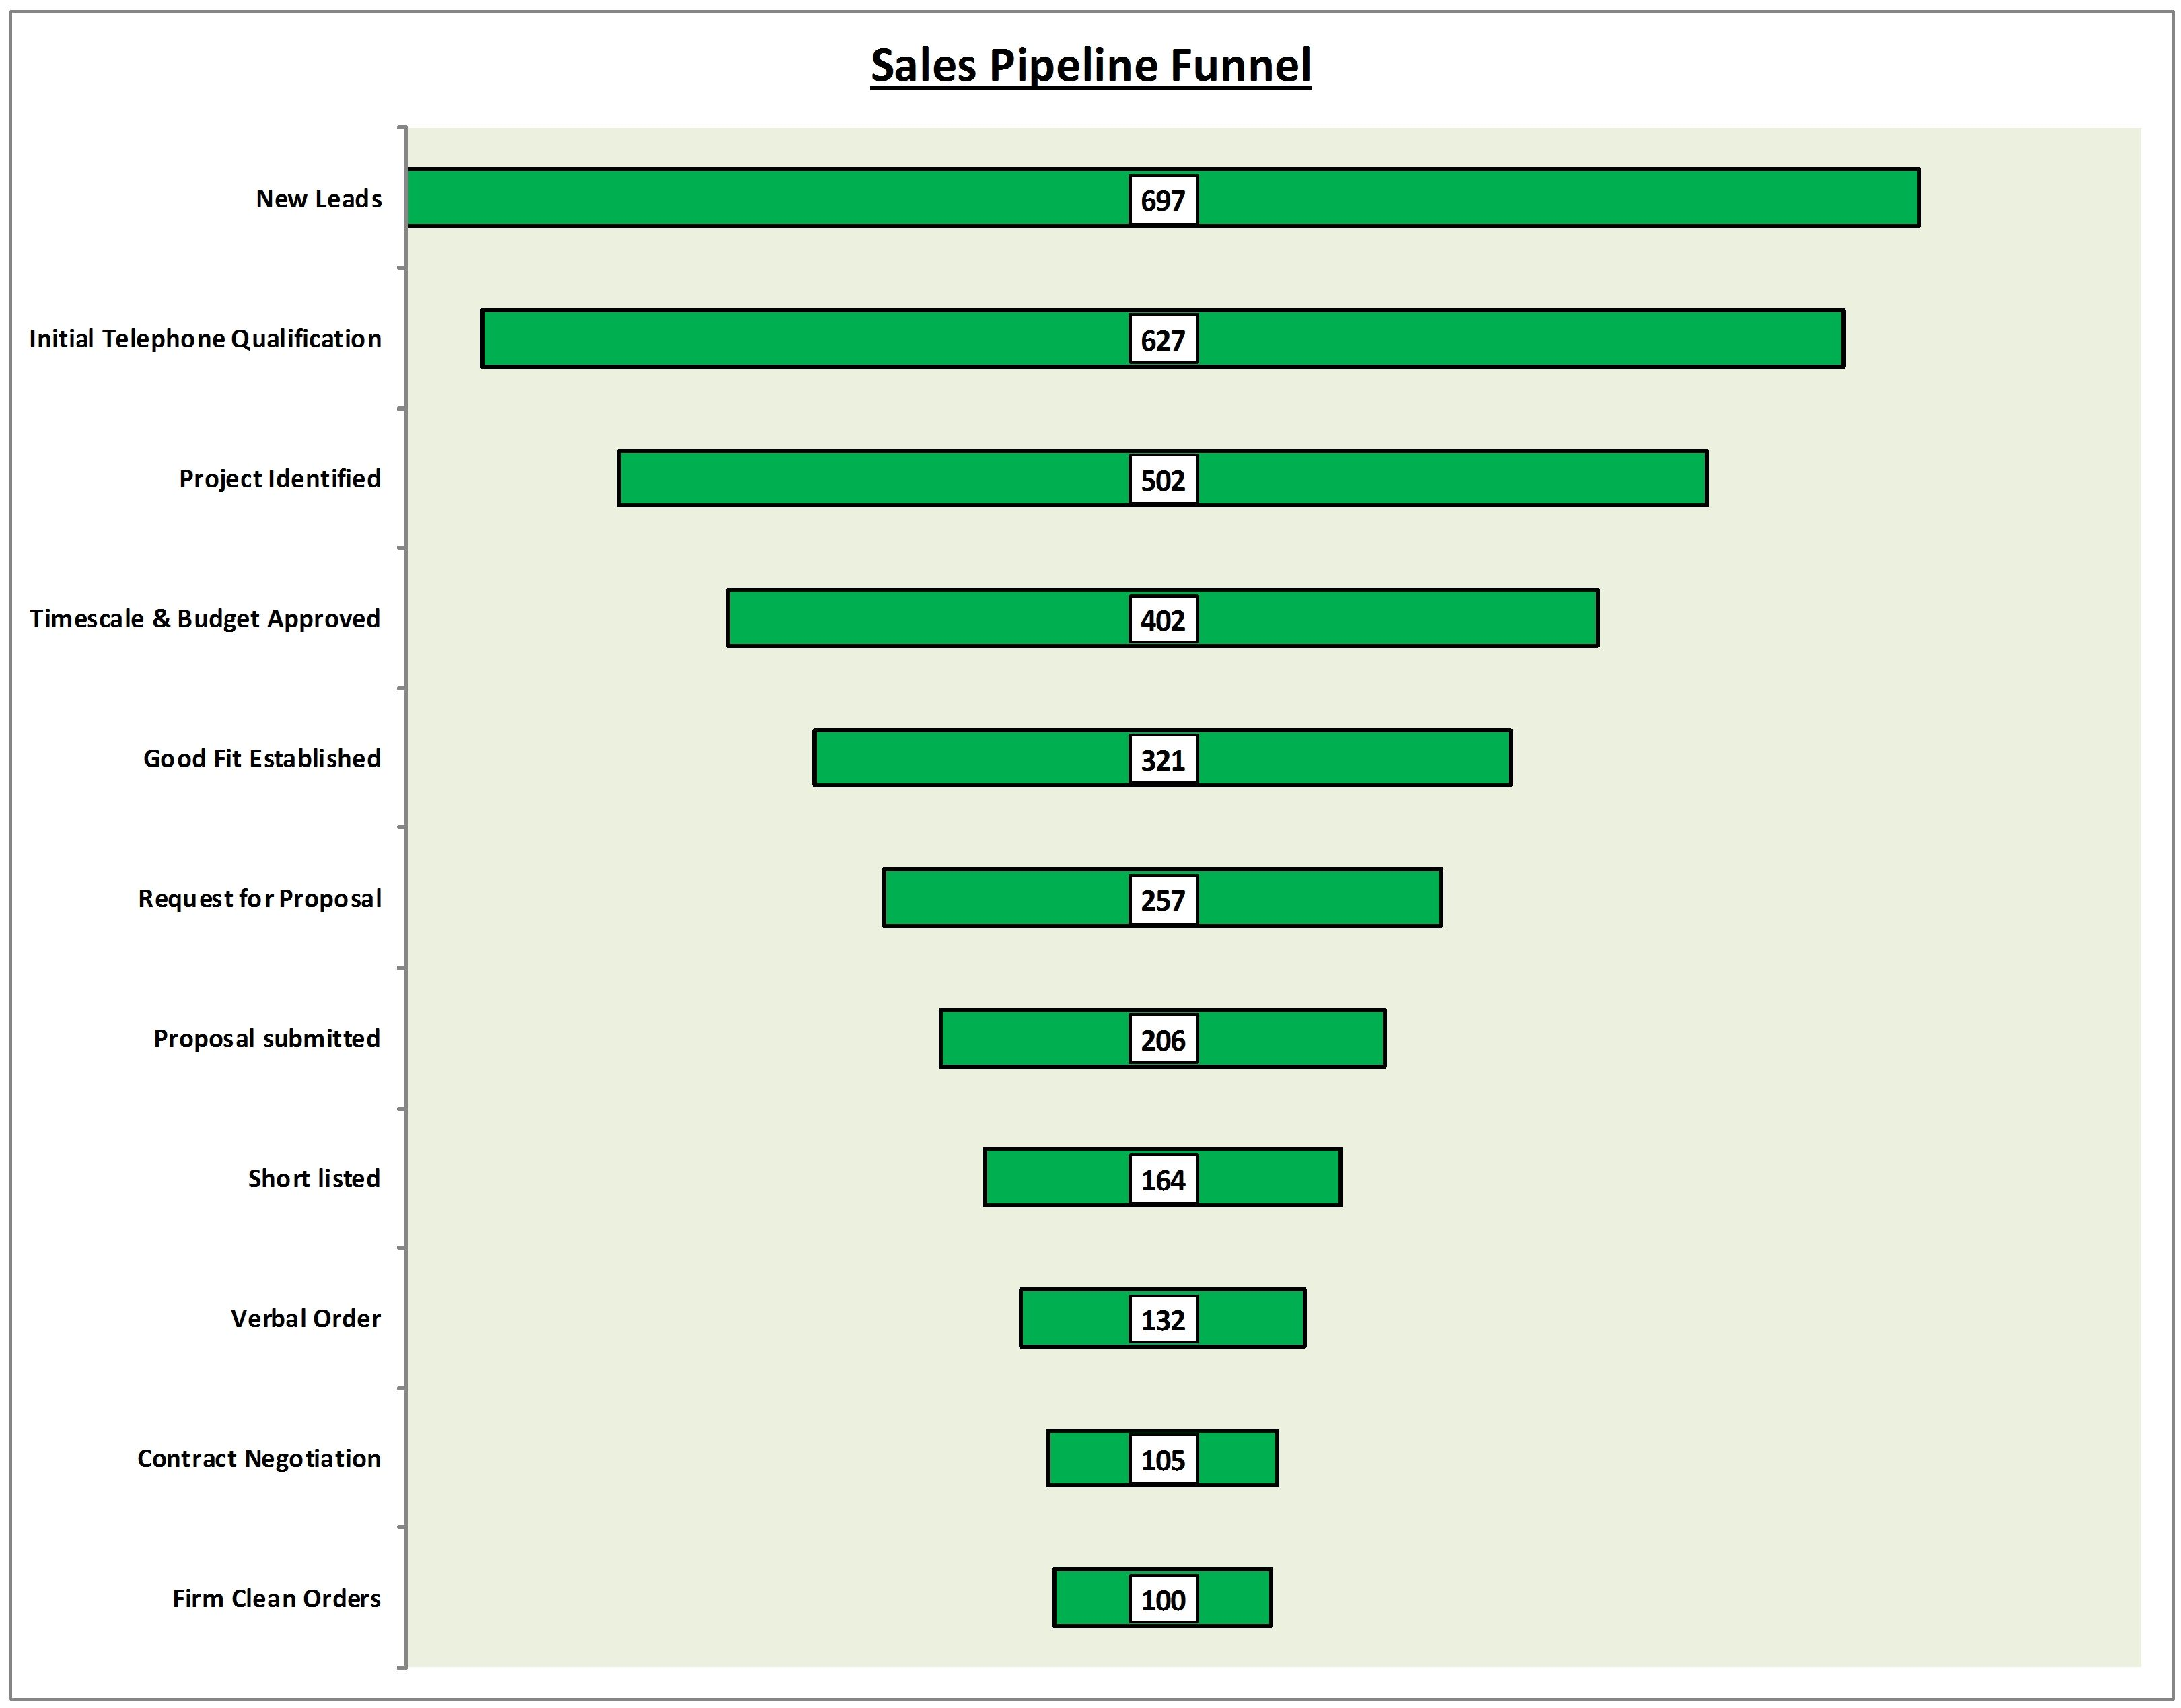 Sales Pipeline Funnel Graphic Excel Template Now In  Tool Store